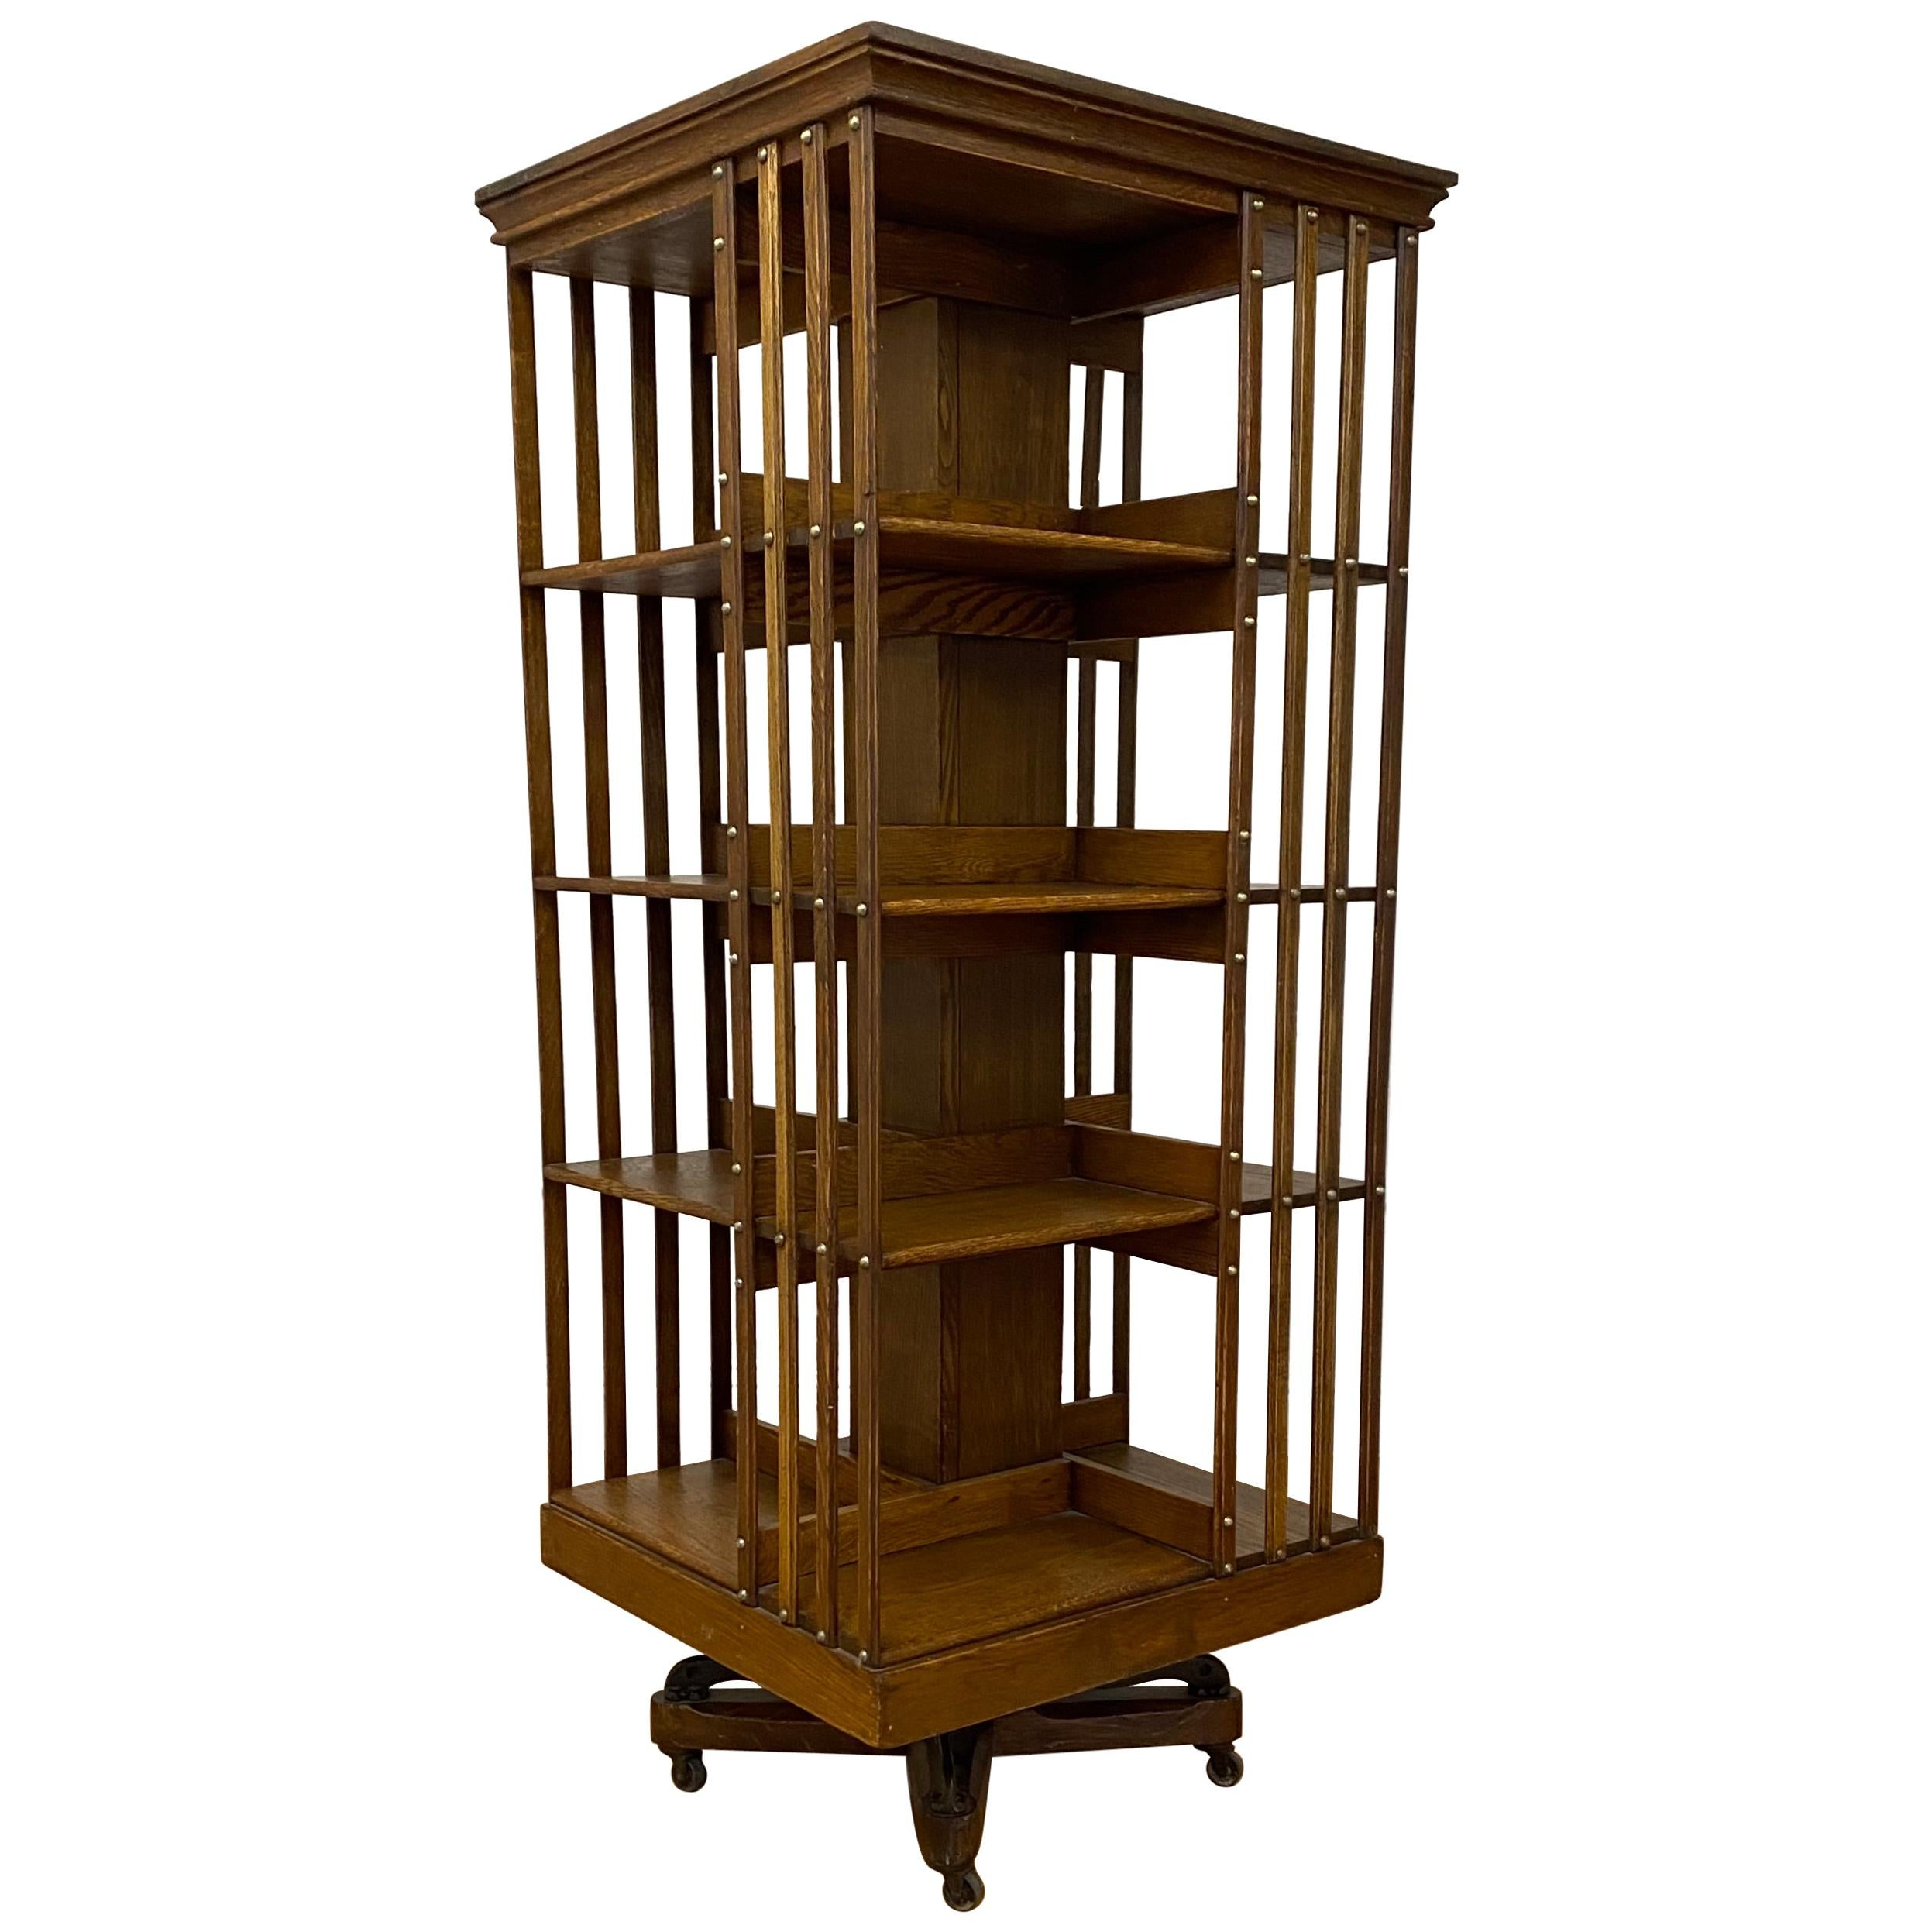 Early 20th Century Arts & Crafts Rotating Bookcase, C.1900-1910